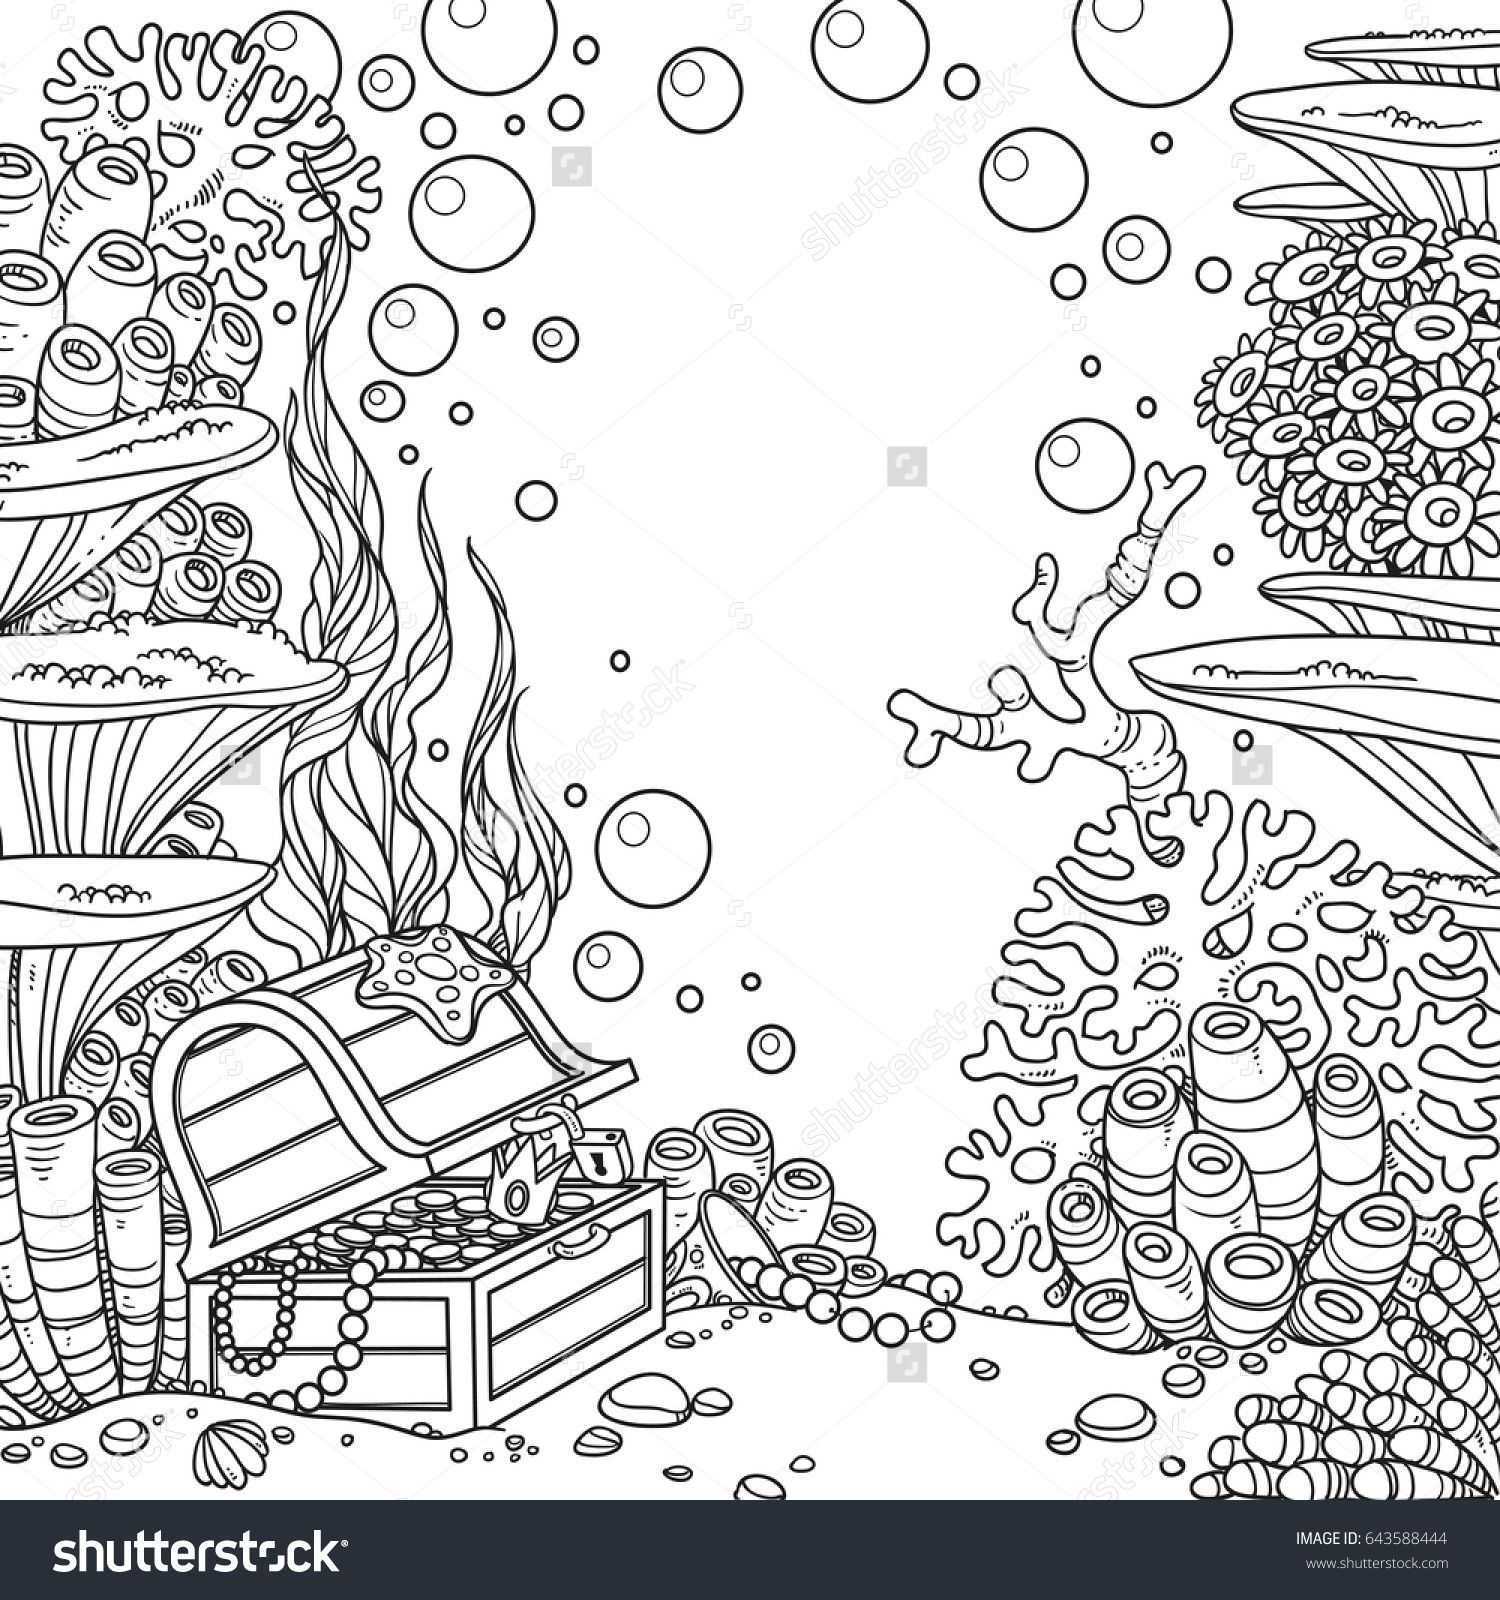 Underwater World With Corals And Treasure Chest Outlined Isolated On White Background Coral Drawing Water Animals Art Animal Coloring Pages